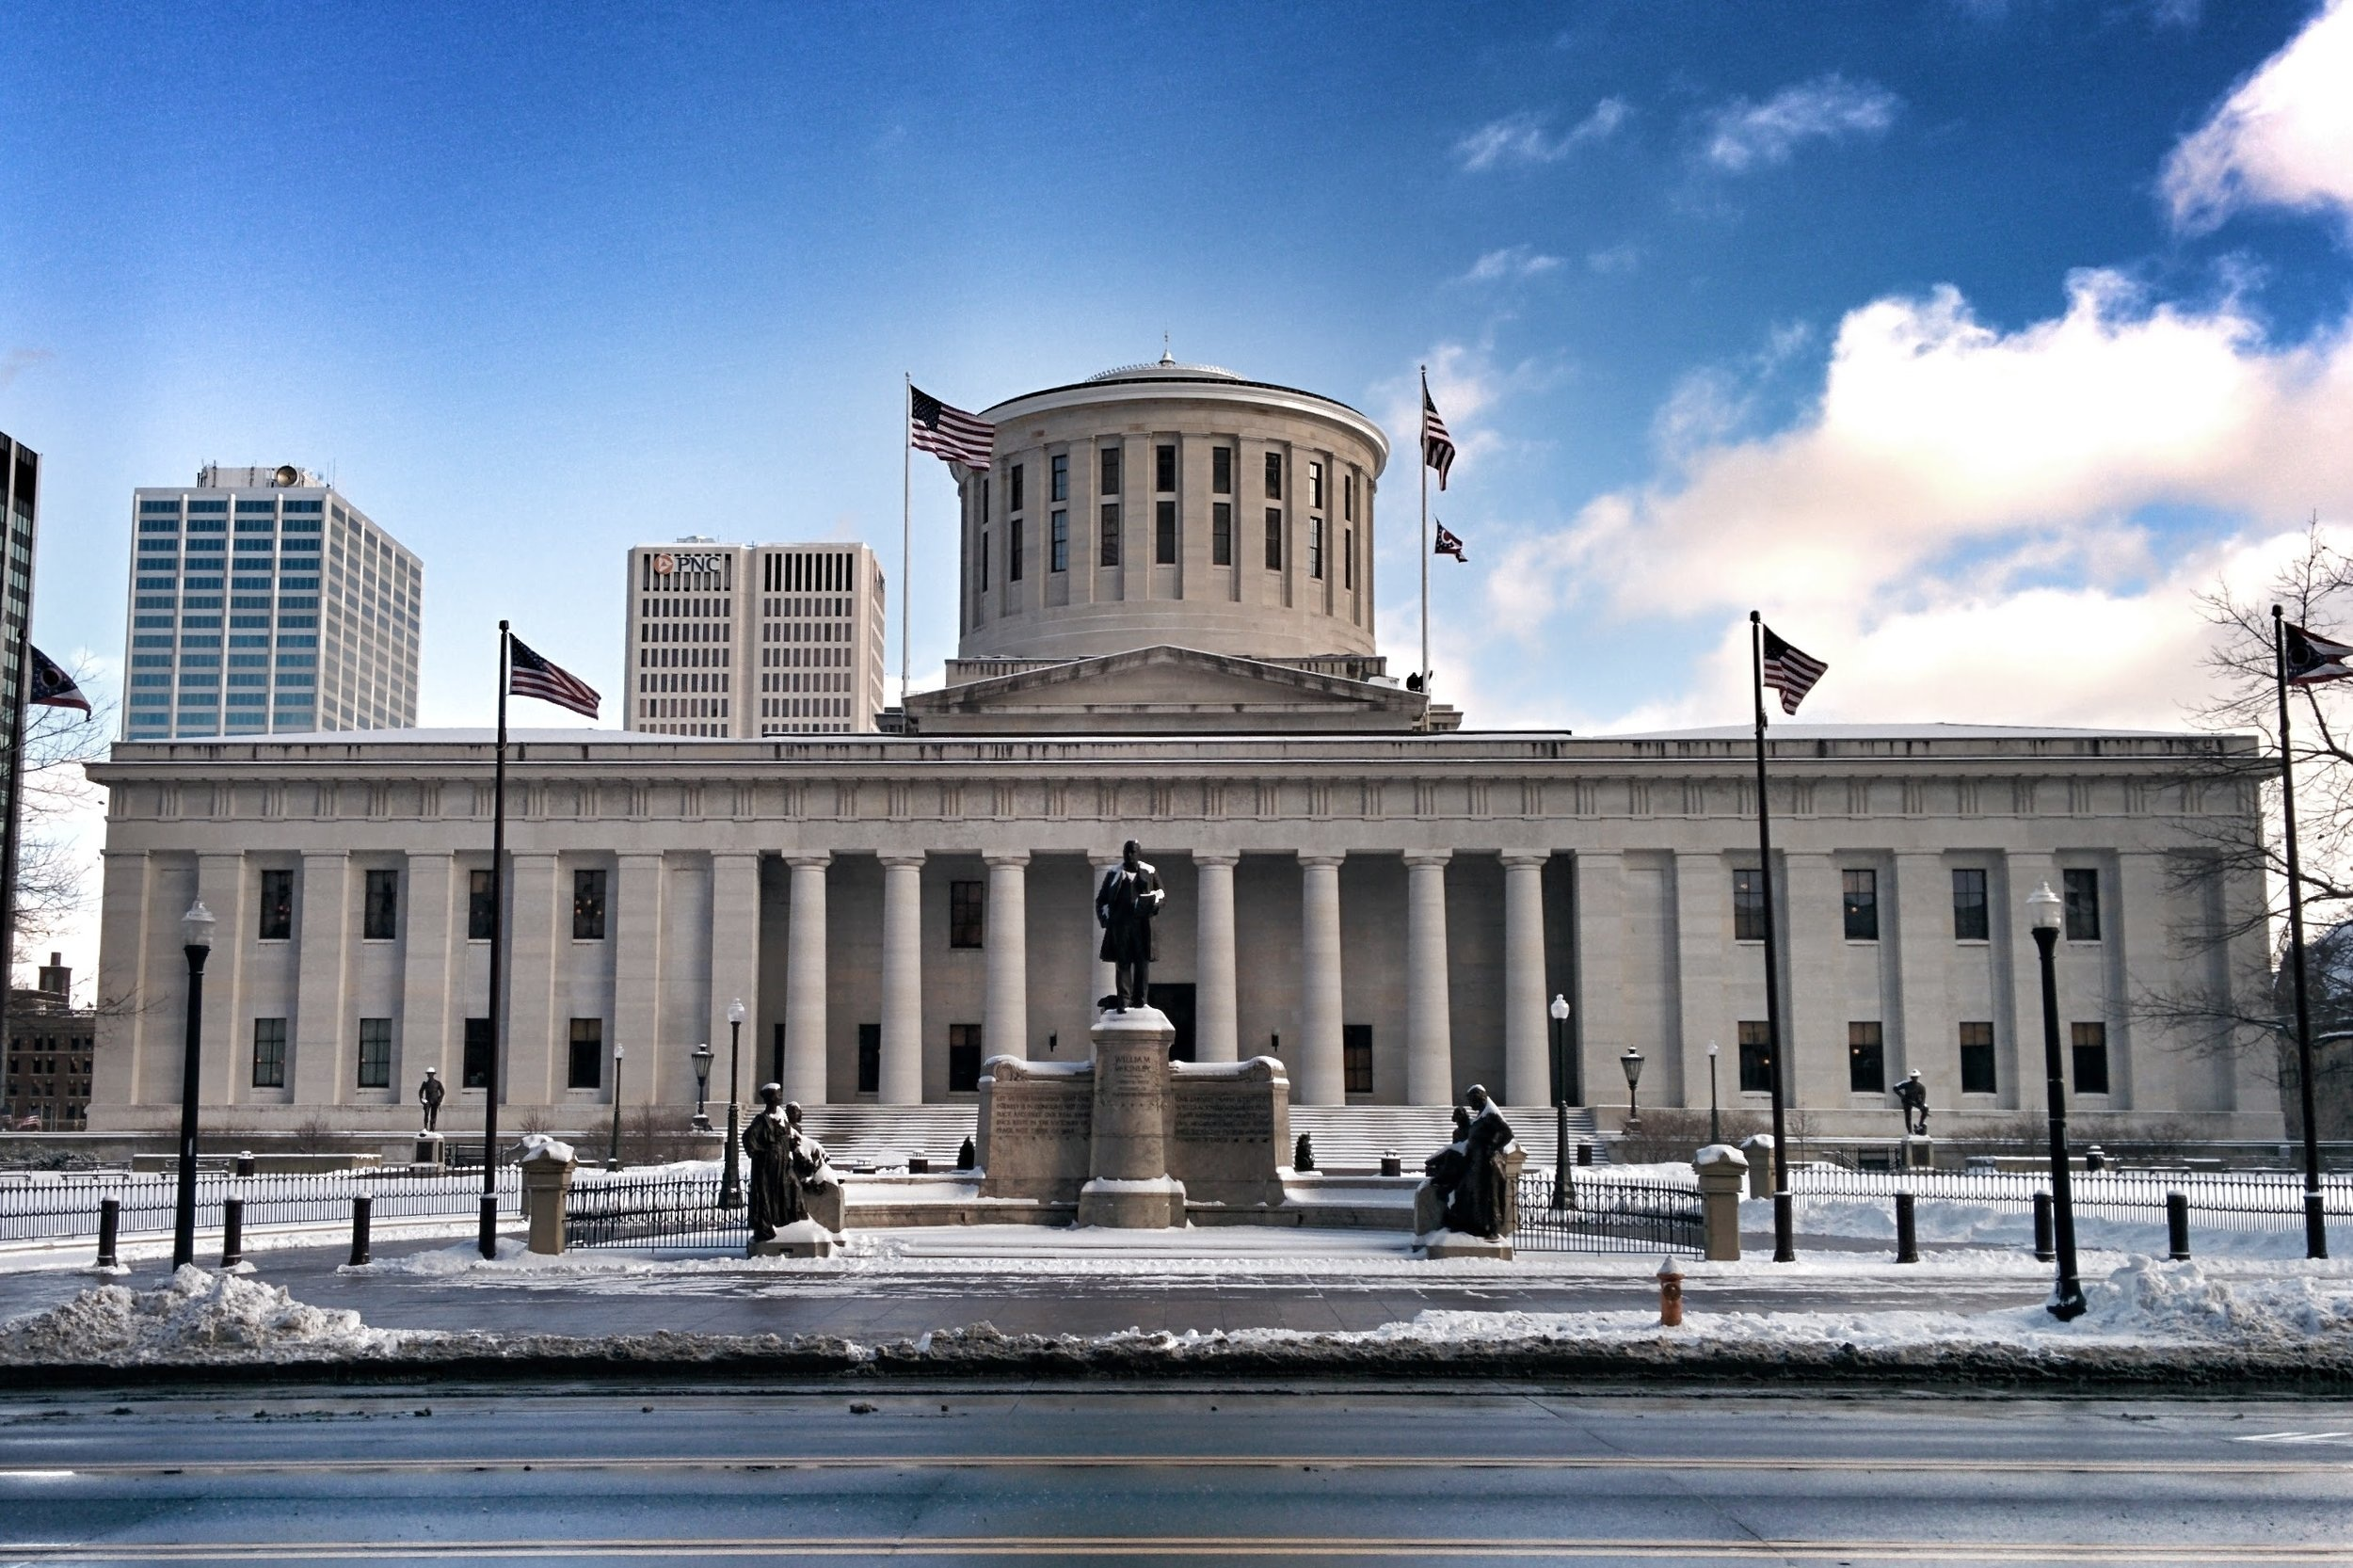 2018 Policy Platform - The mission of the Greater Ohio Policy Center is to champion revitalization and sustainable growth. We believe Ohio deserves robust, effective policies and practices that reinvigorate communities.